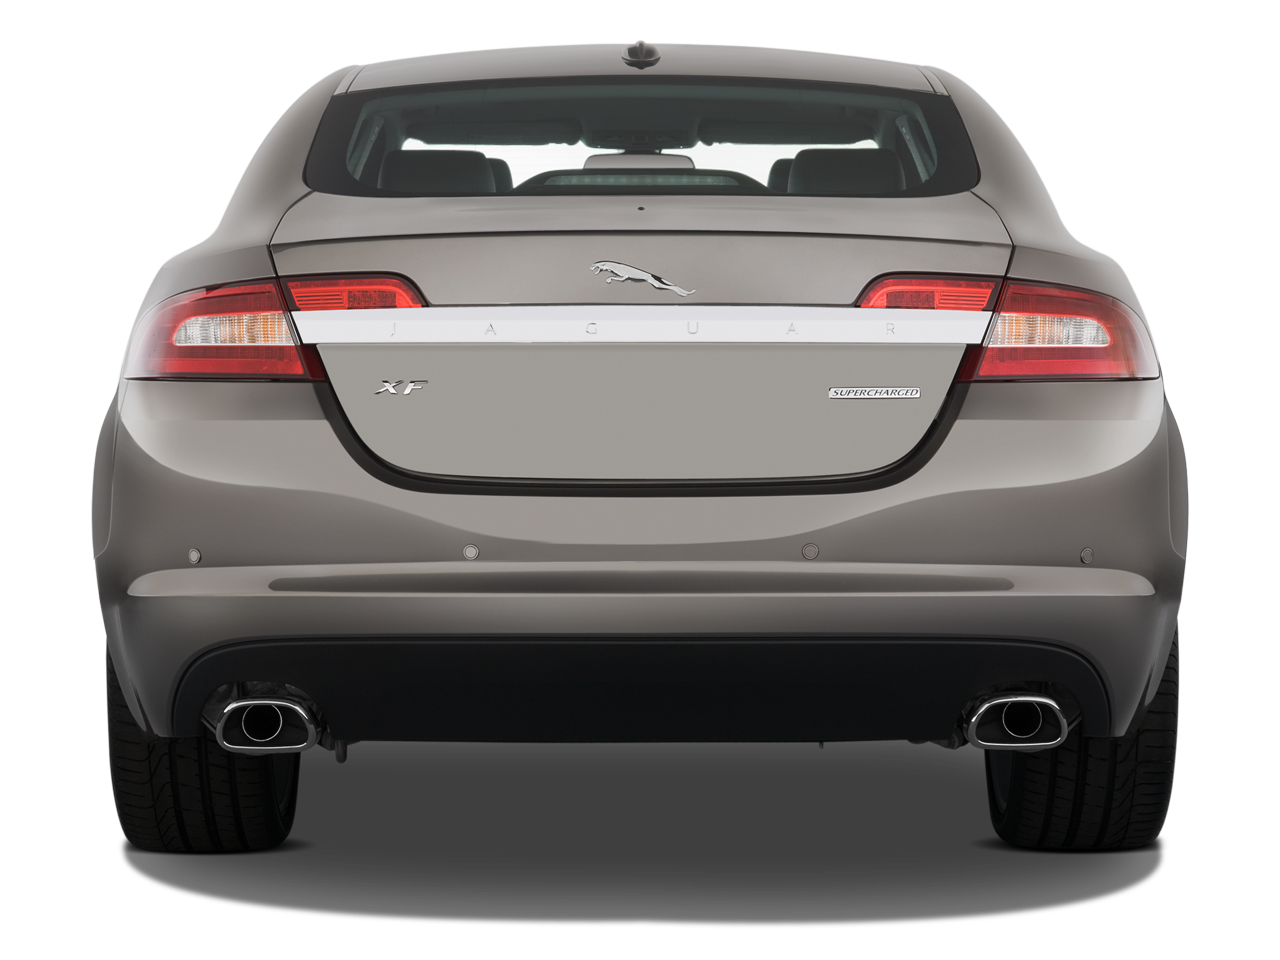 2009 Jaguar XF Supercharged - Latest News, Features, and Reviews ...